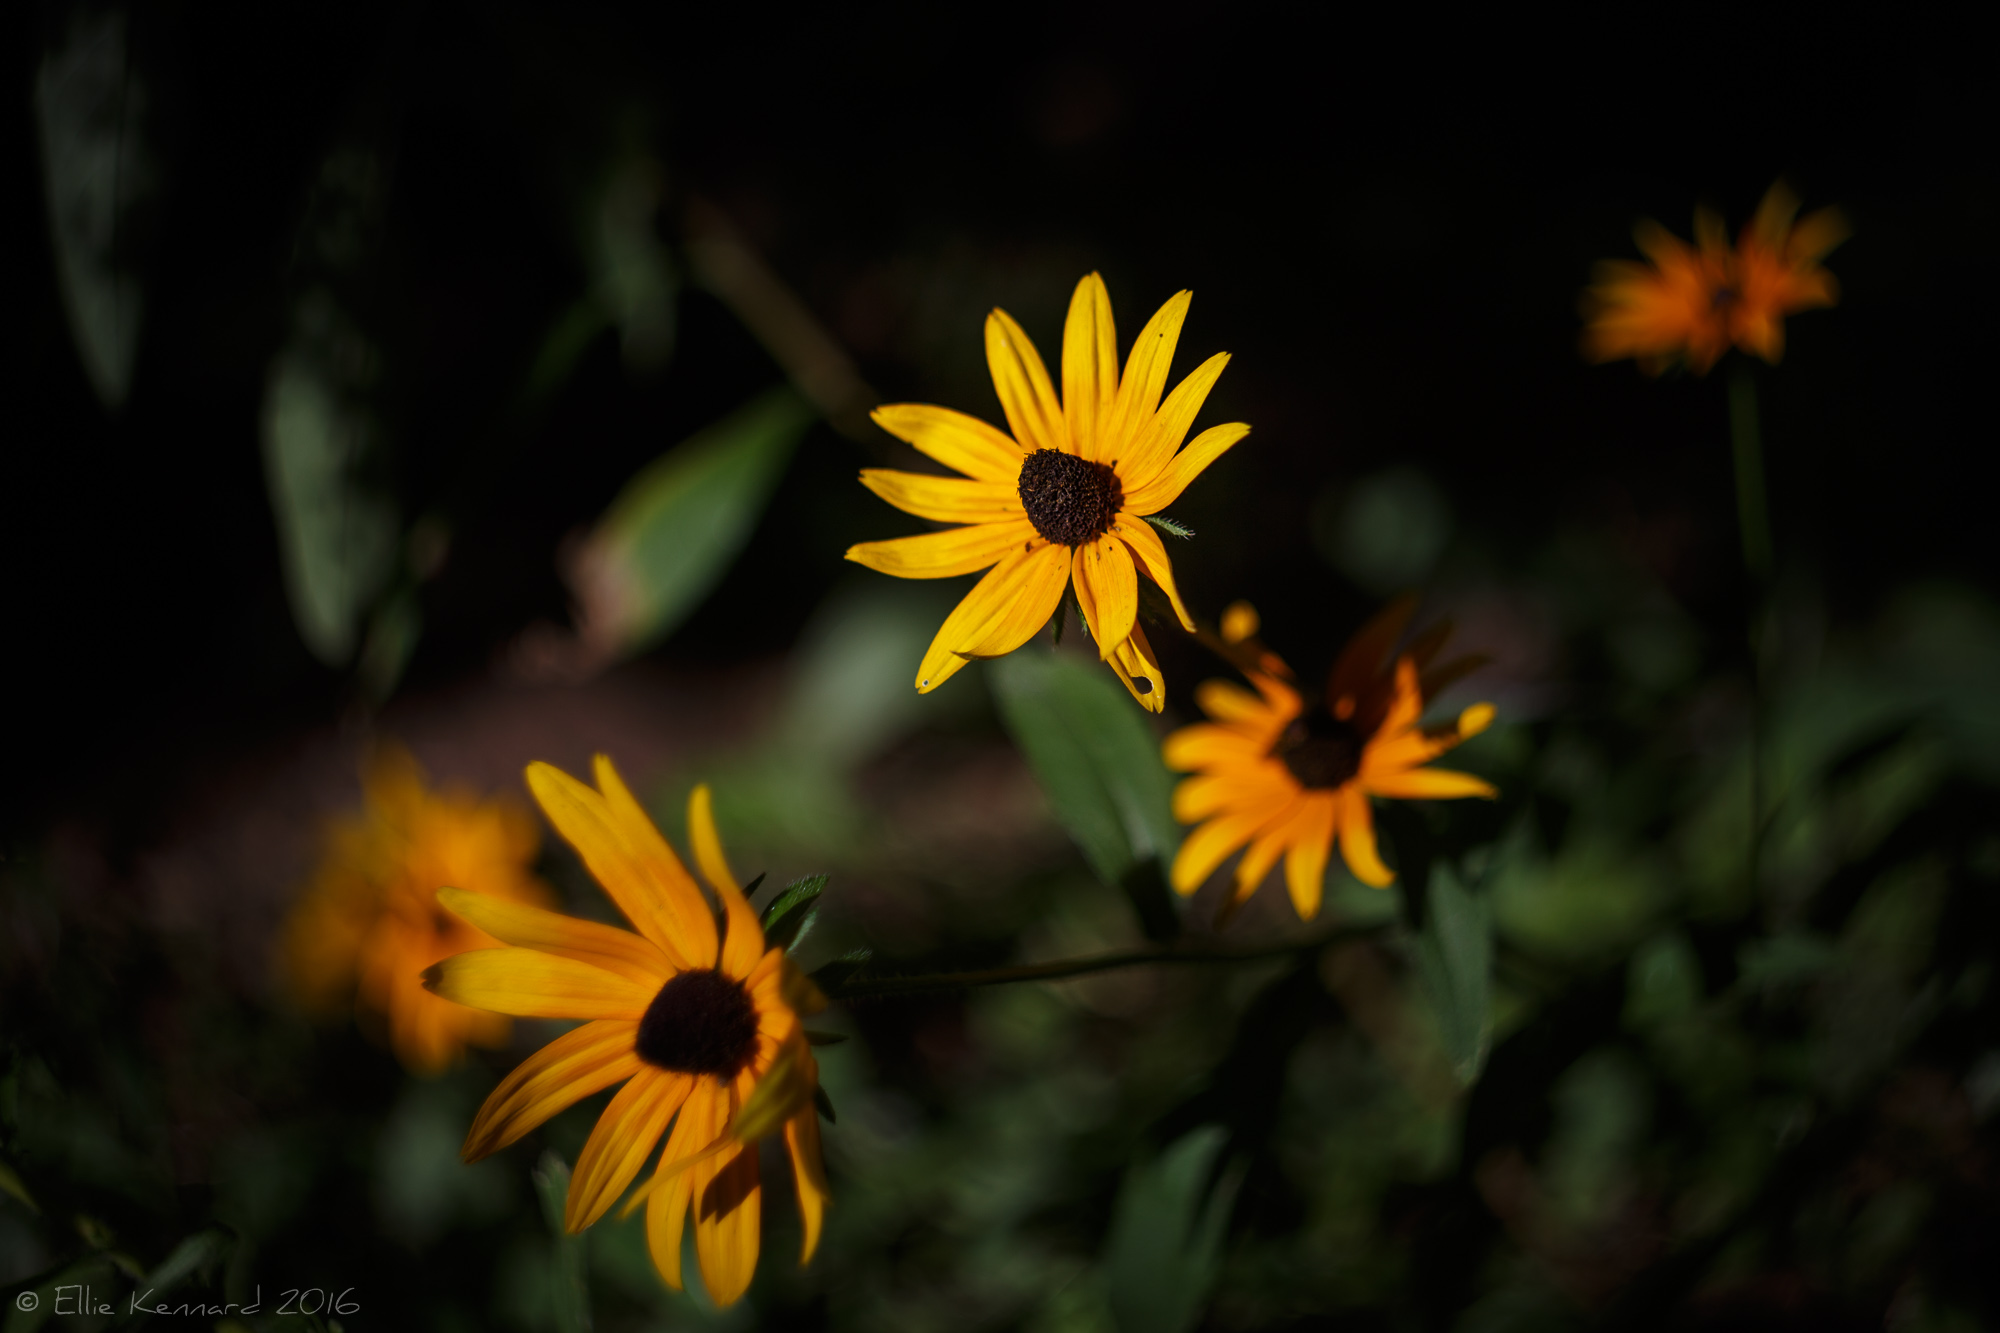 Black-Eyed Susans (Rudbeckia_hirta) lighting up the undergrowth - Ellie Kennard 2016